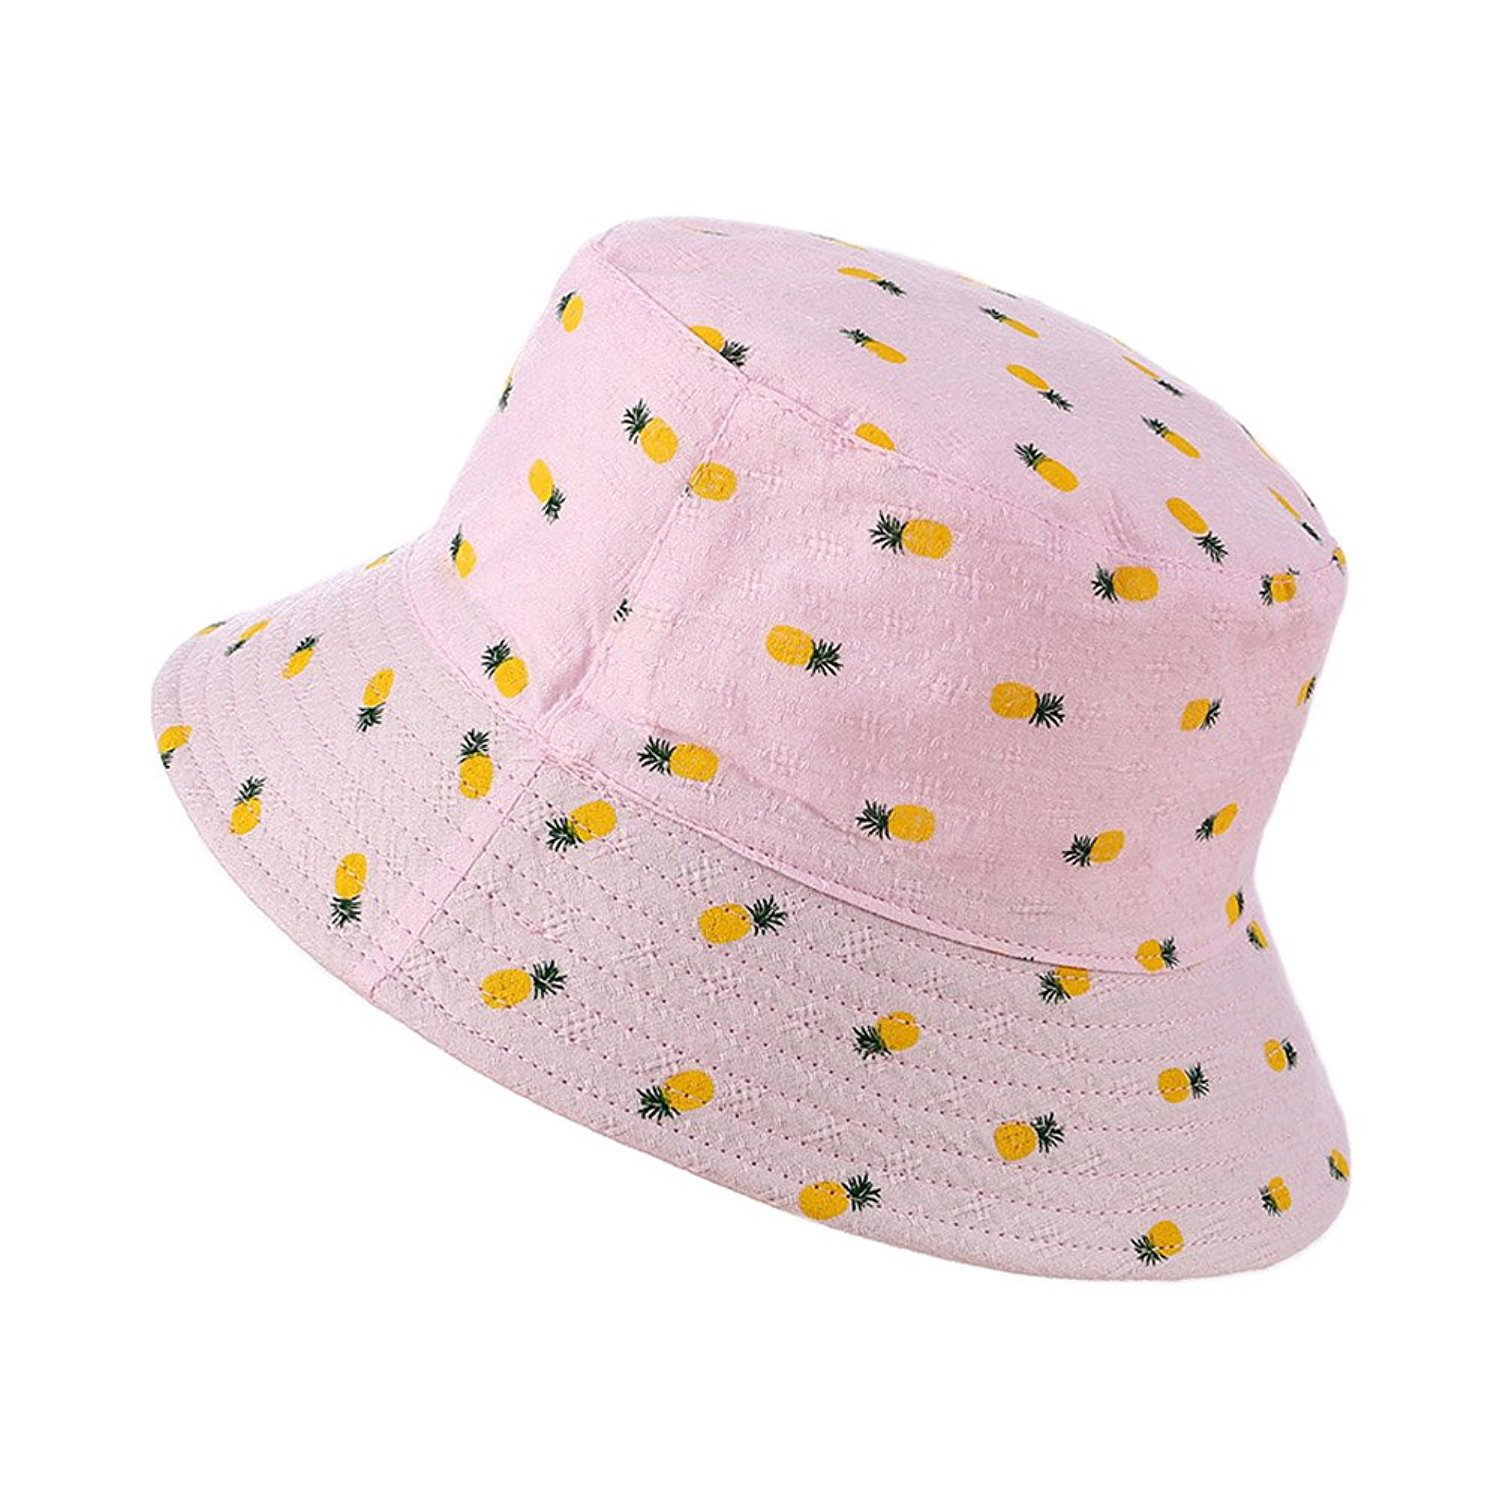 343cc12d2890f Get Quotations · Song Pineapple Basin Hat Sunbathing Fisherman Hat Wild  Casual Sun Hat